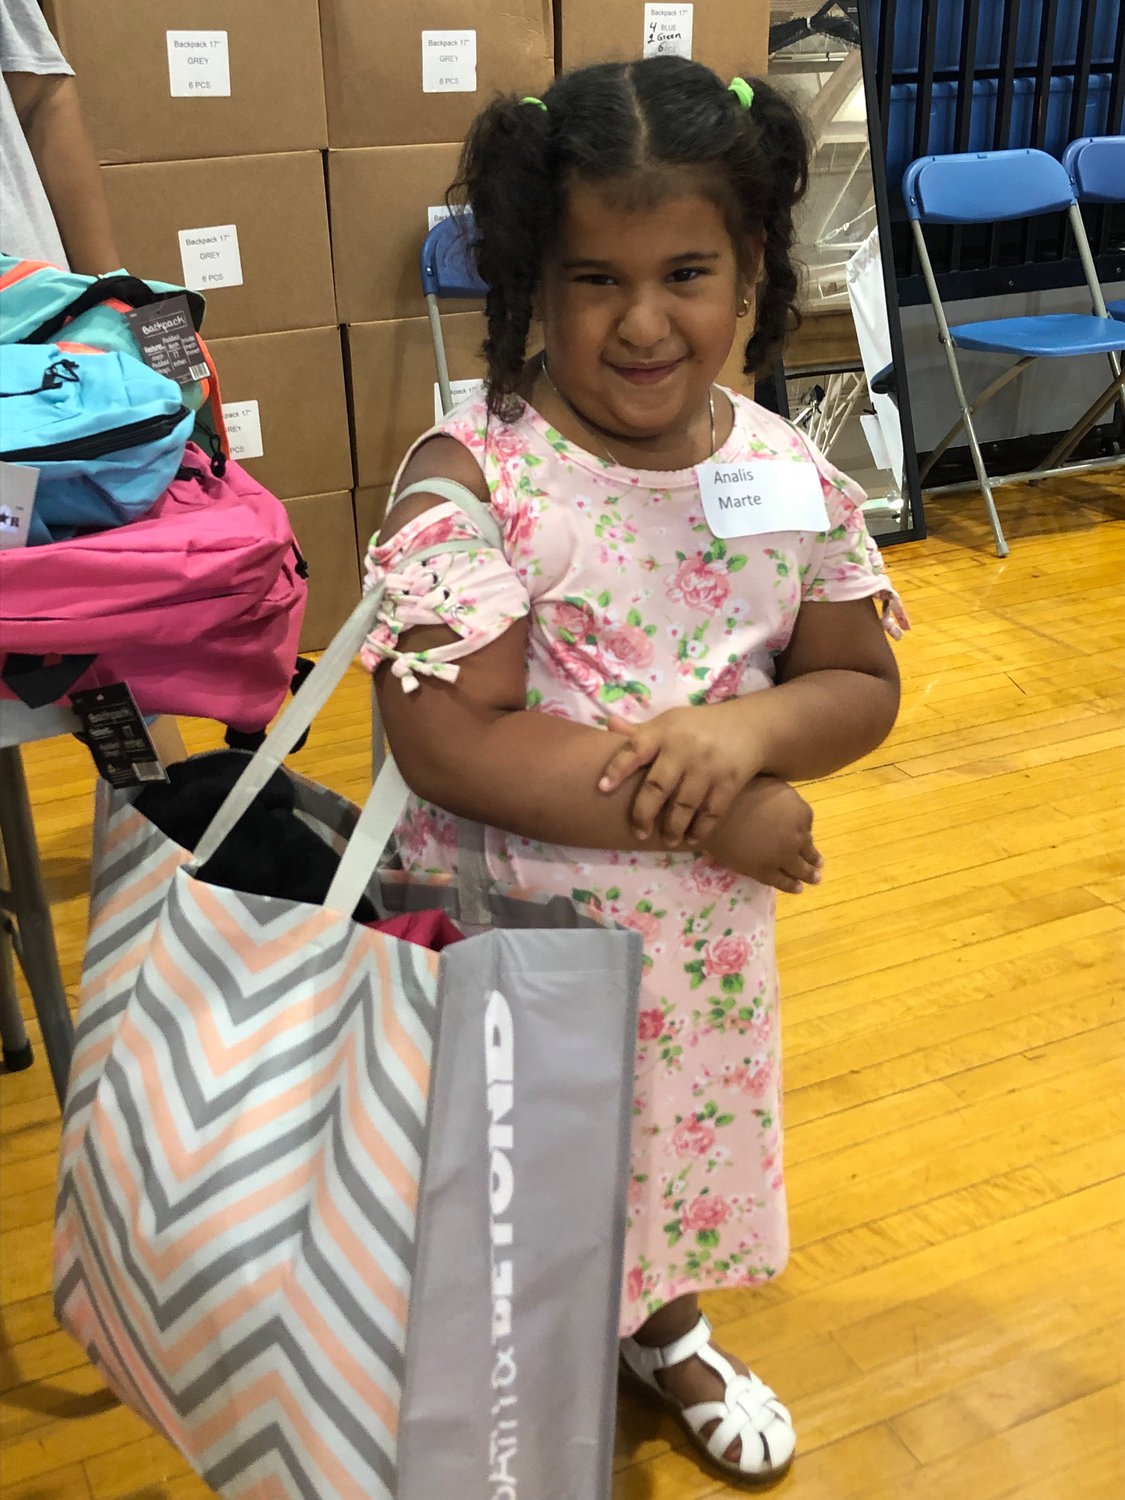 Analis appeared proud of her shopping experience at the Back 2 School store.